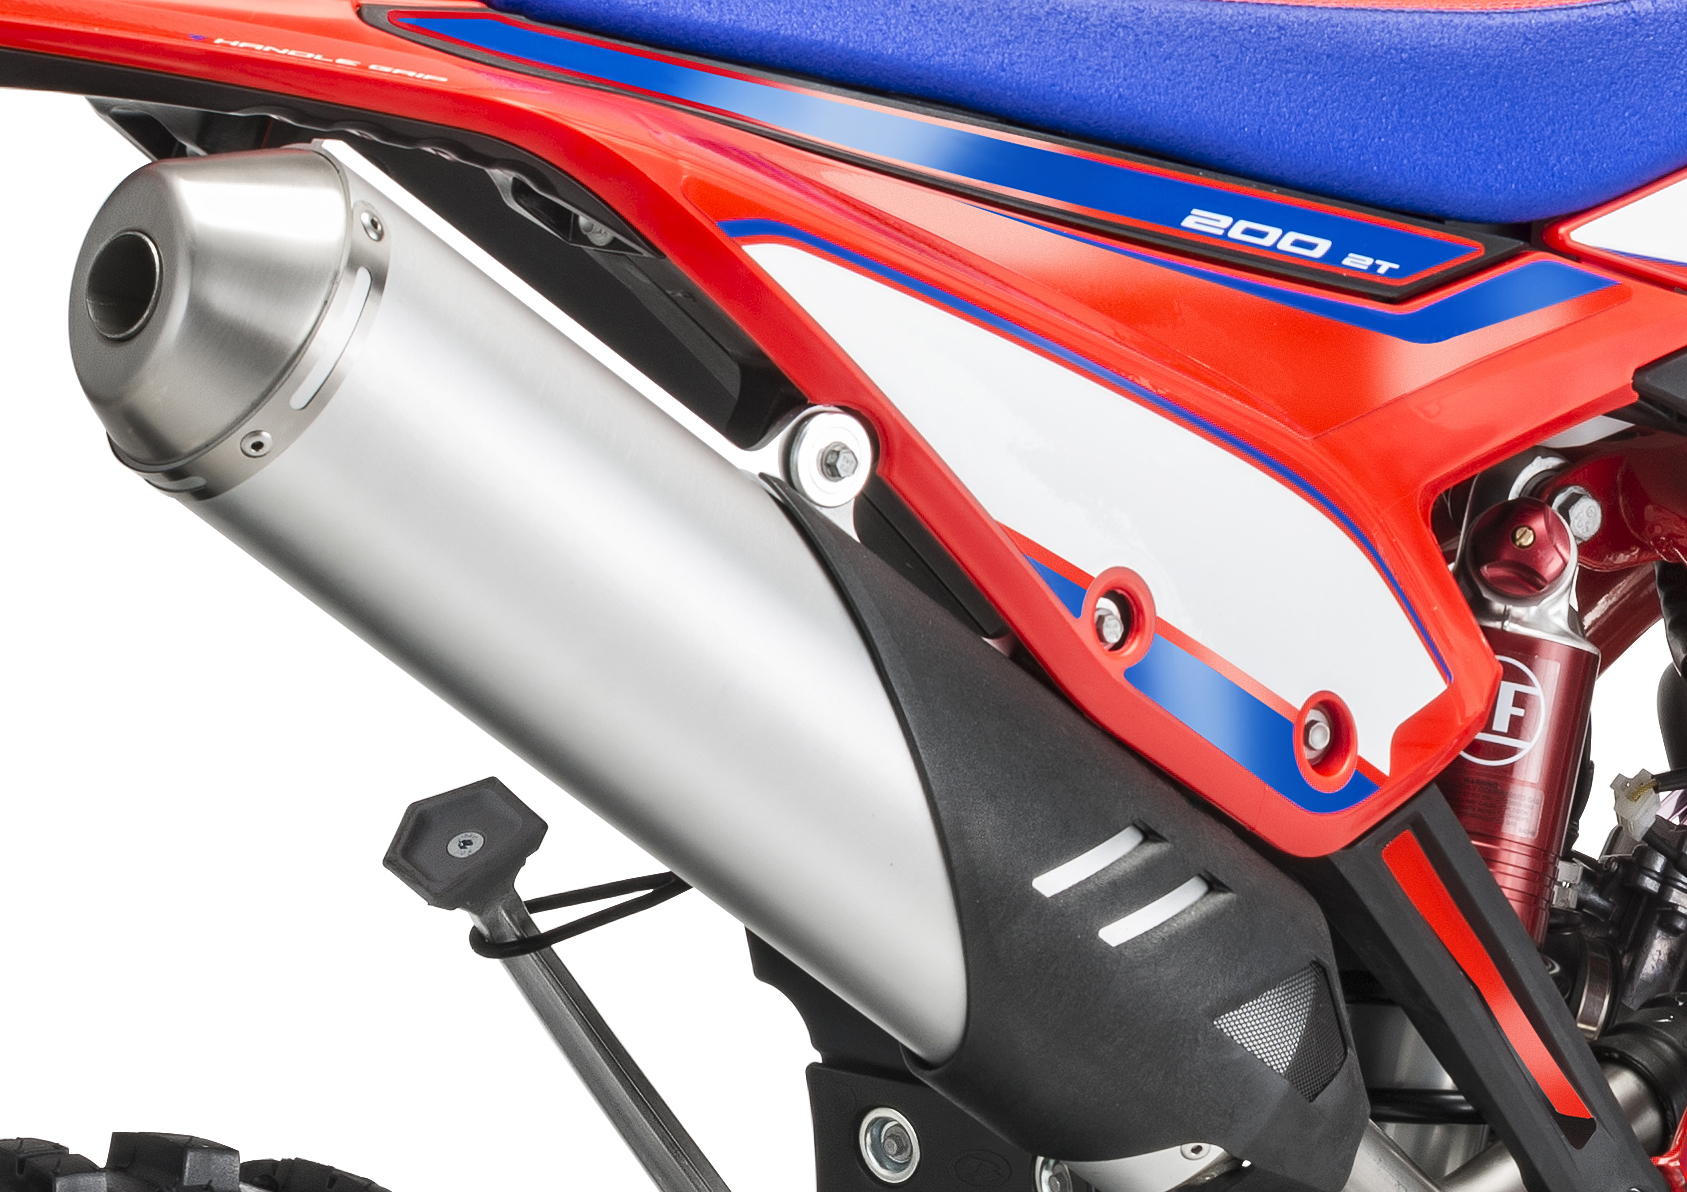 200-rr-race-edition-exhaust-pipe.jpg